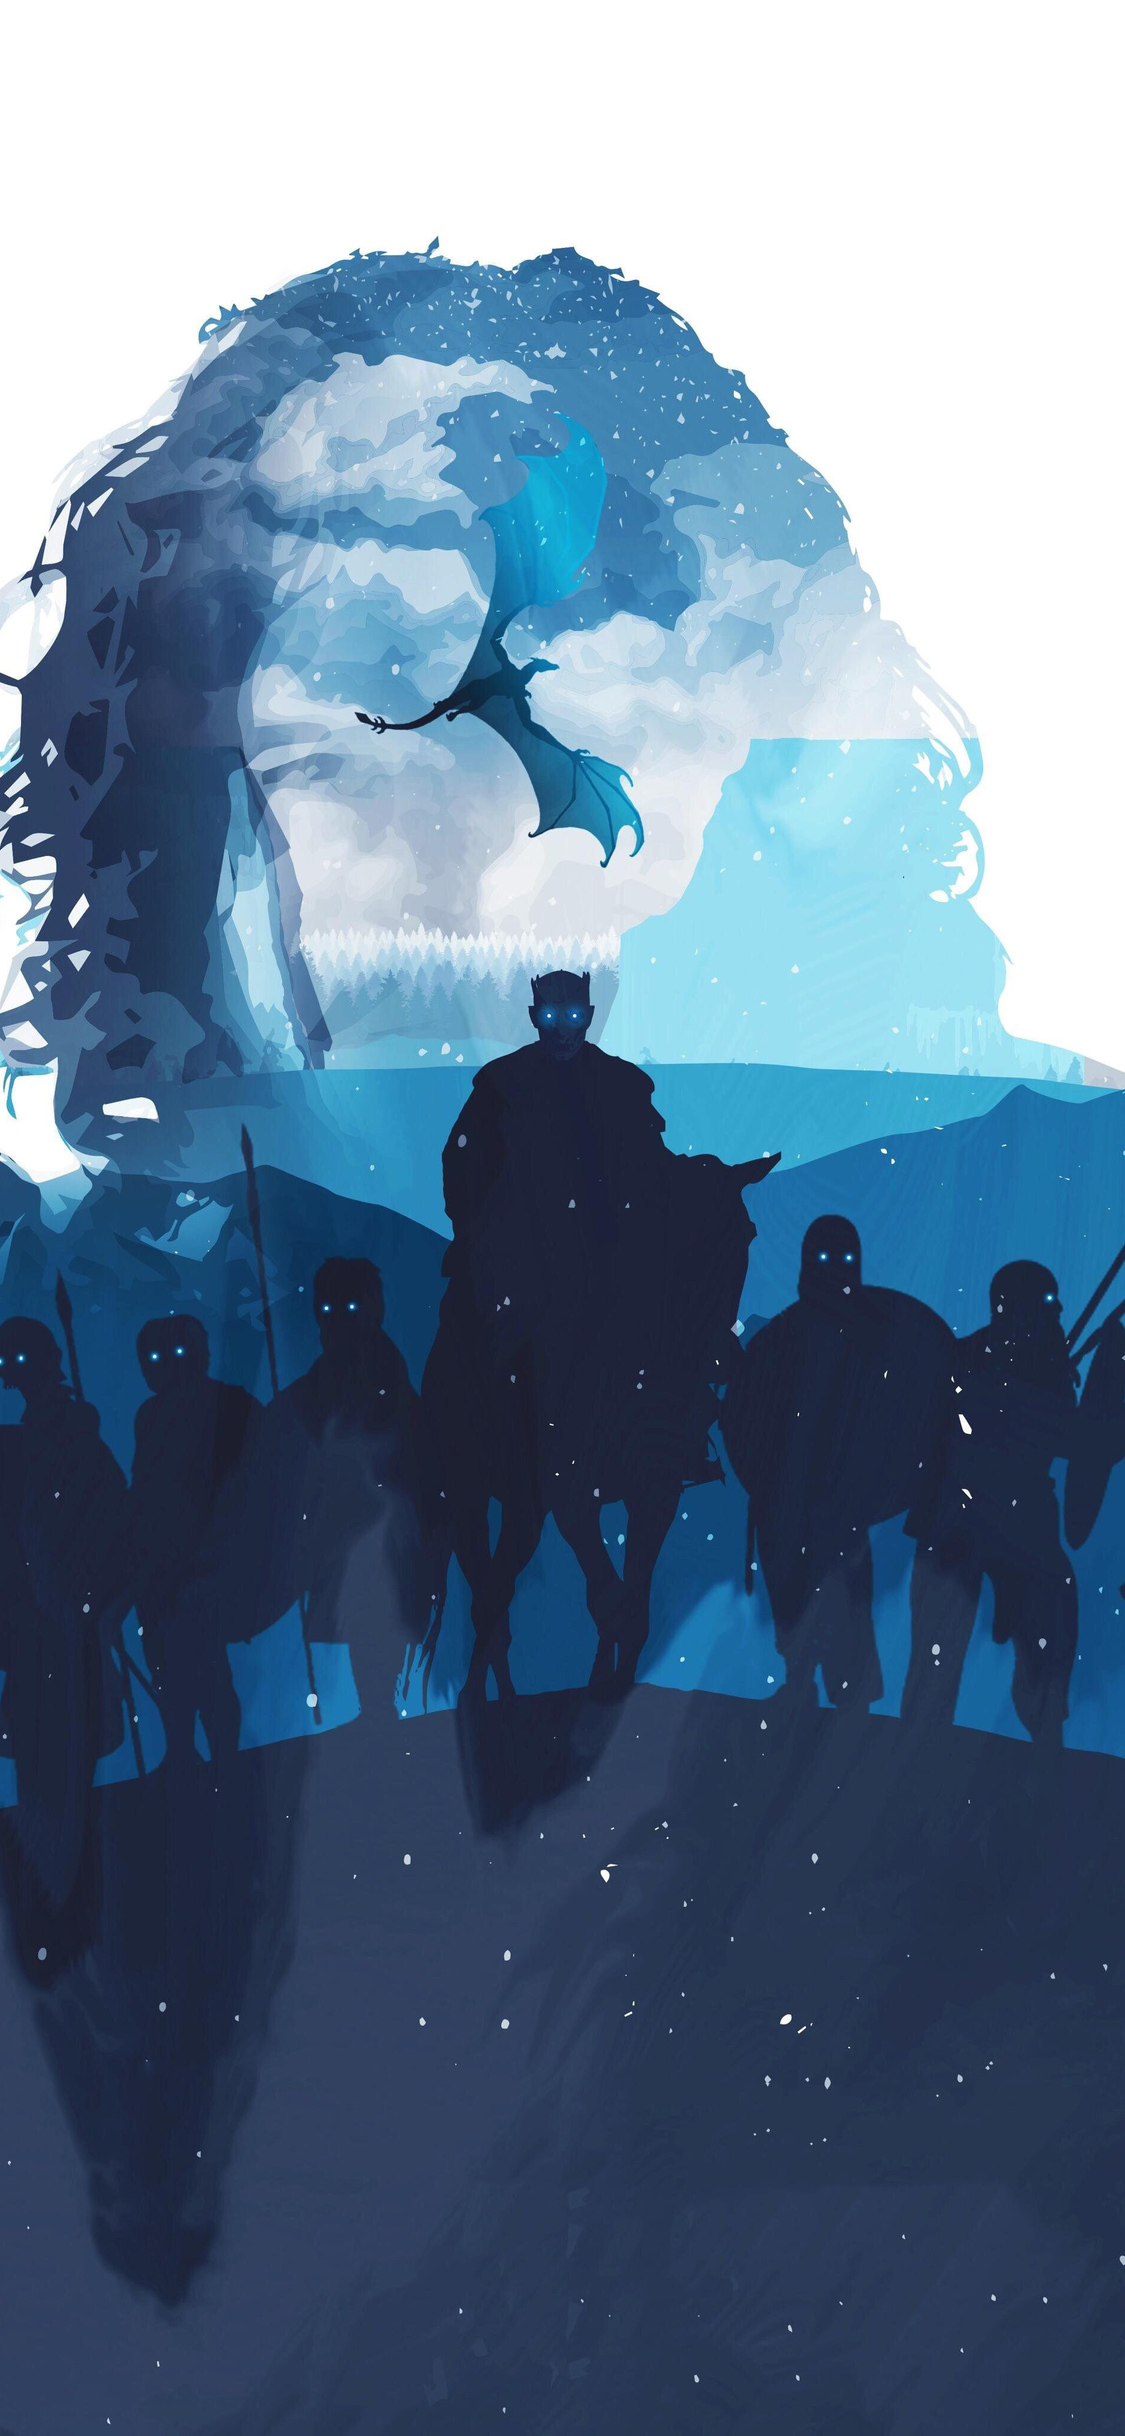 Best Game of Thrones wallpapers for iPhone 1125x2436